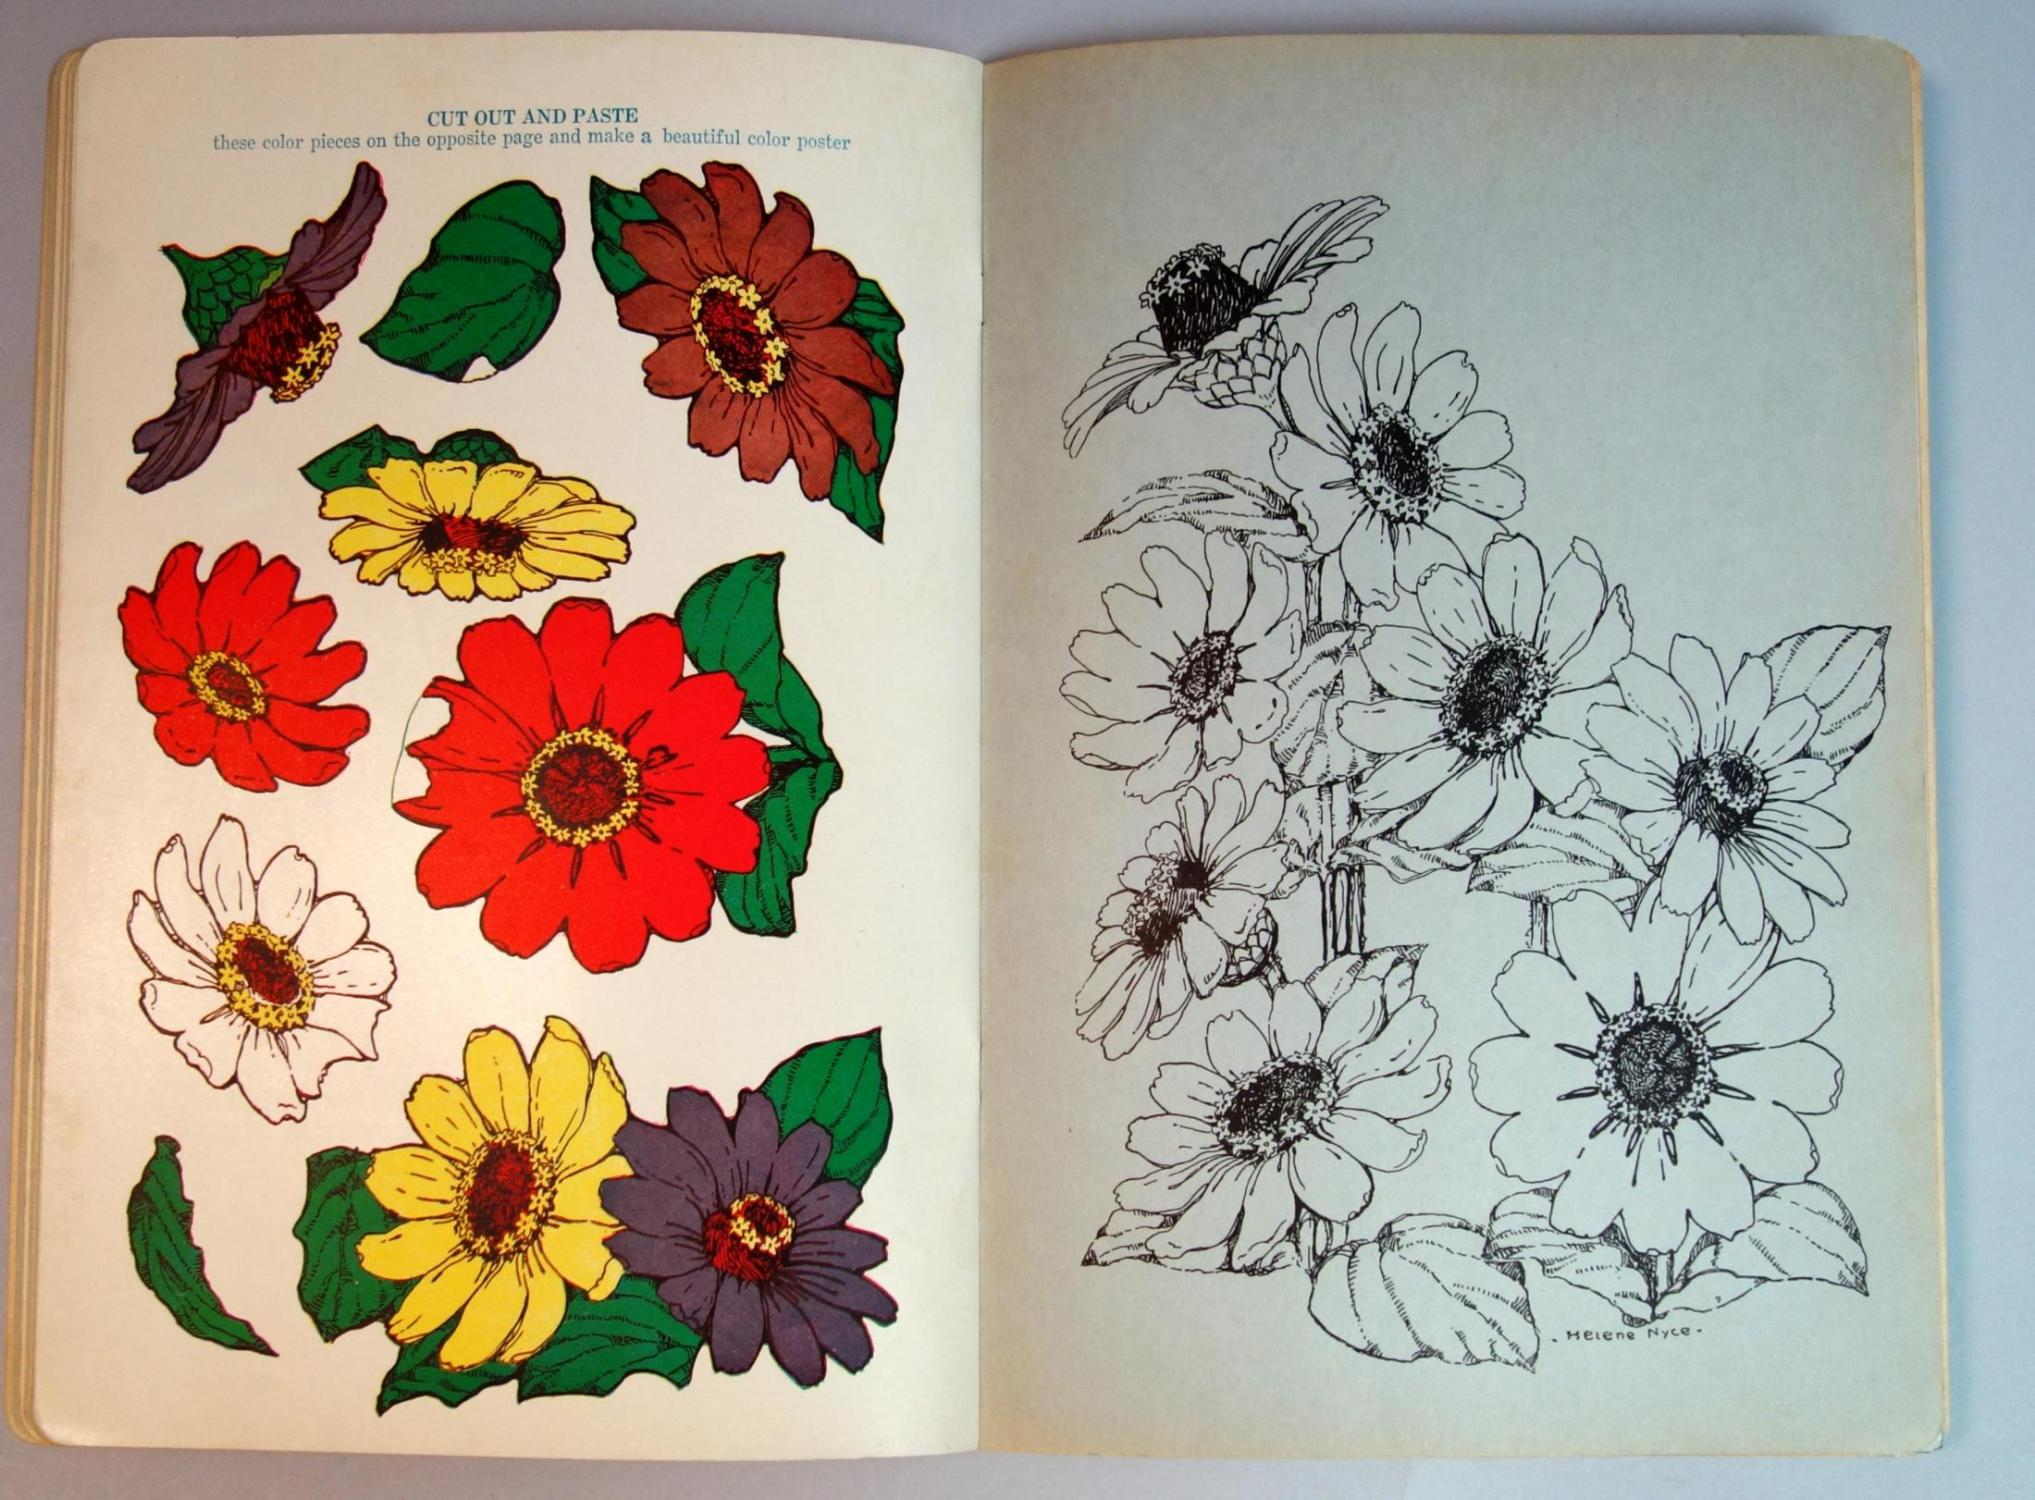 The Patchwork Poster Book Of Flowers To Cut Out And Paste